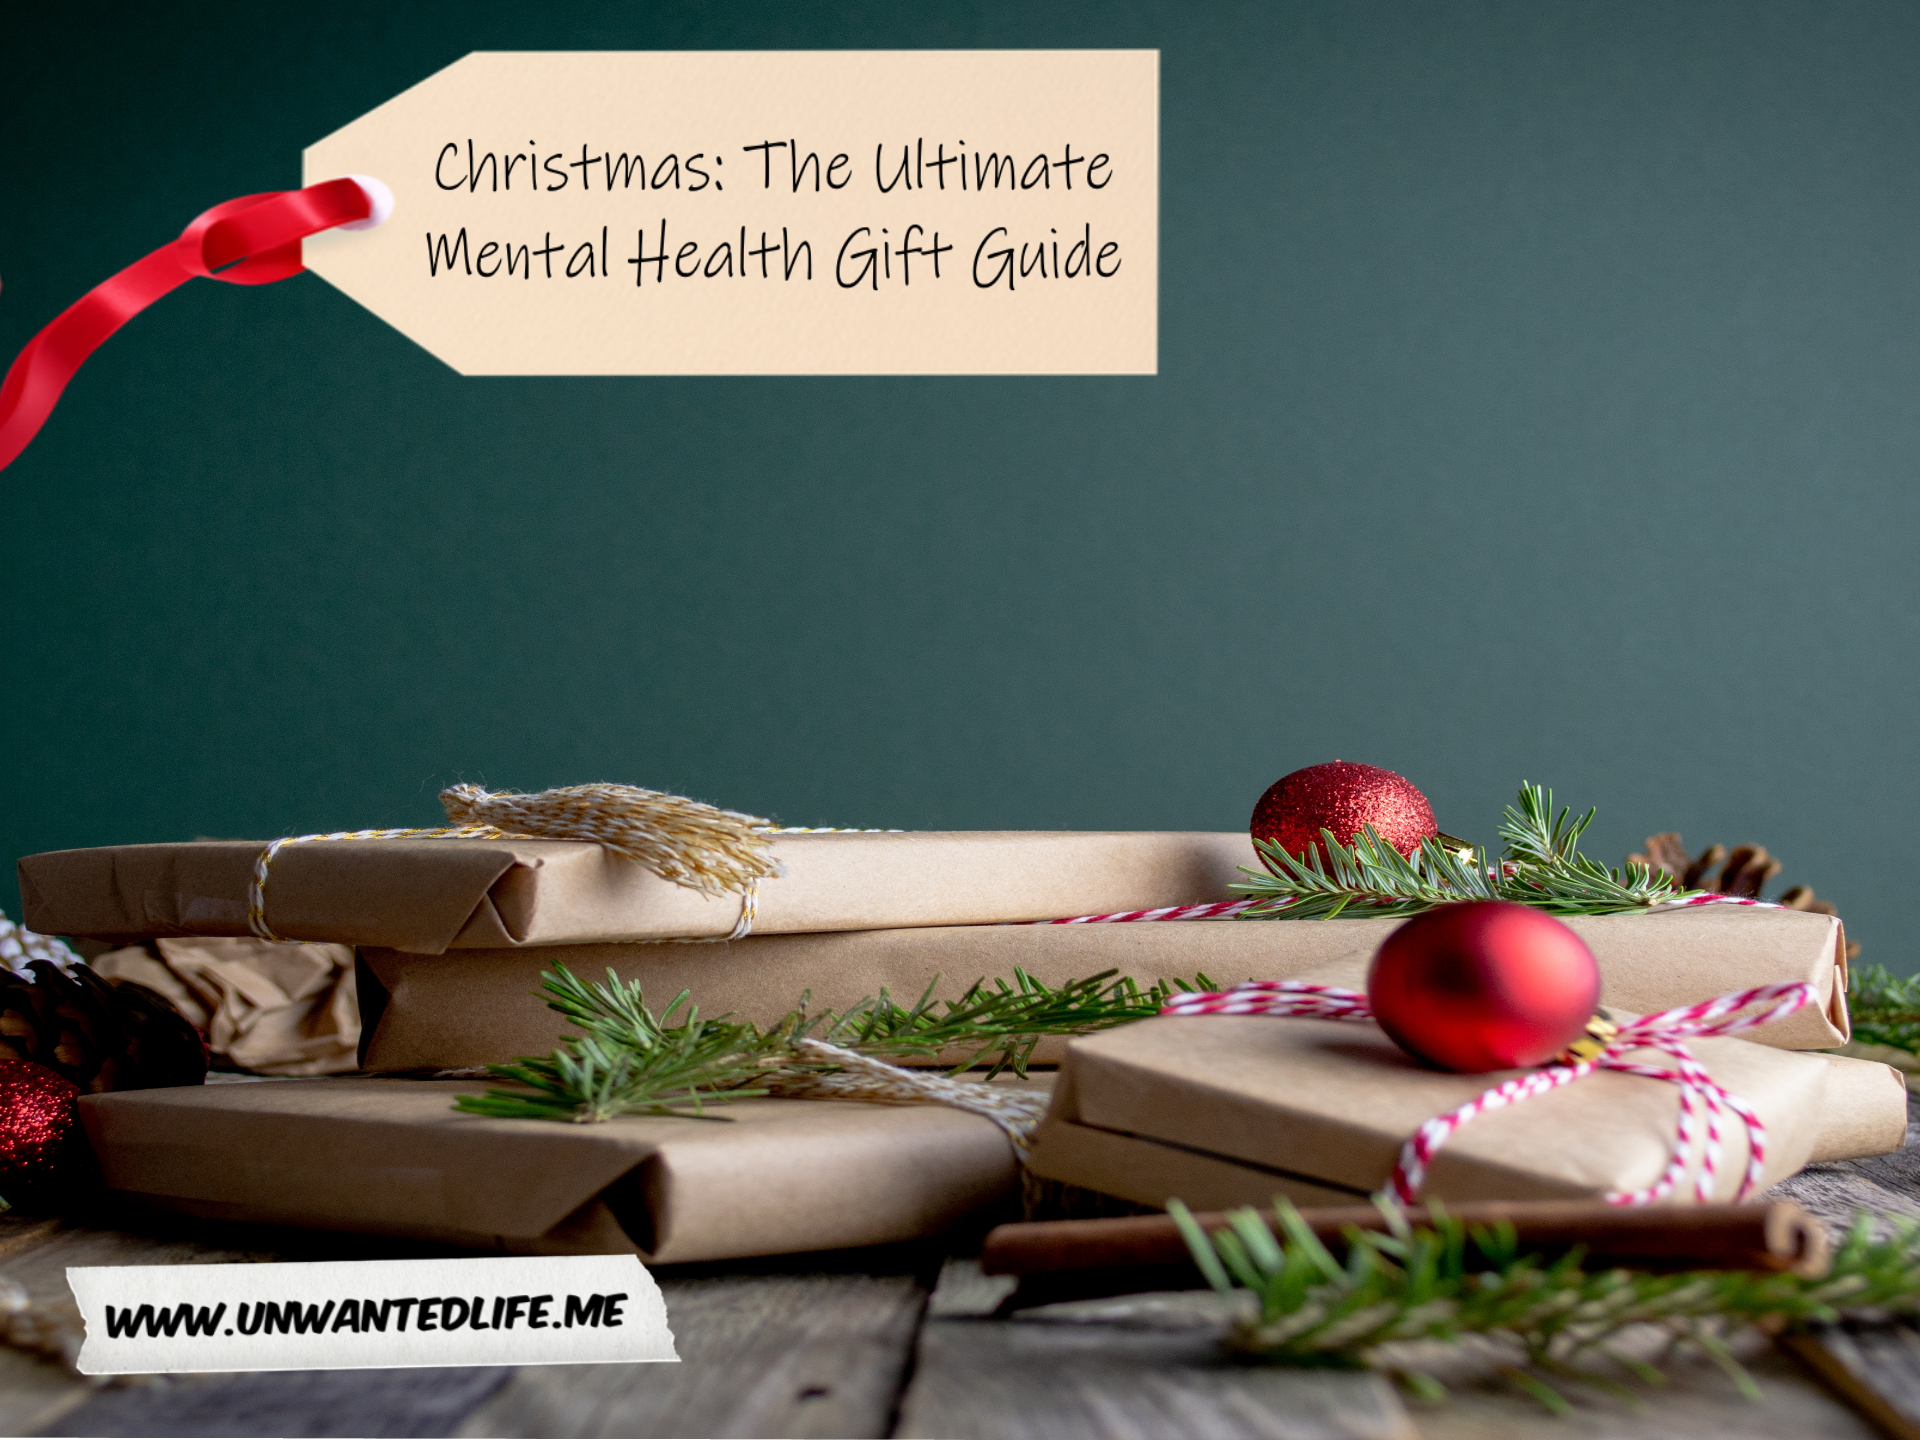 A photo of a collection of presents on a table to represent - Christmas: The Ultimate Mental Health Gift Guide